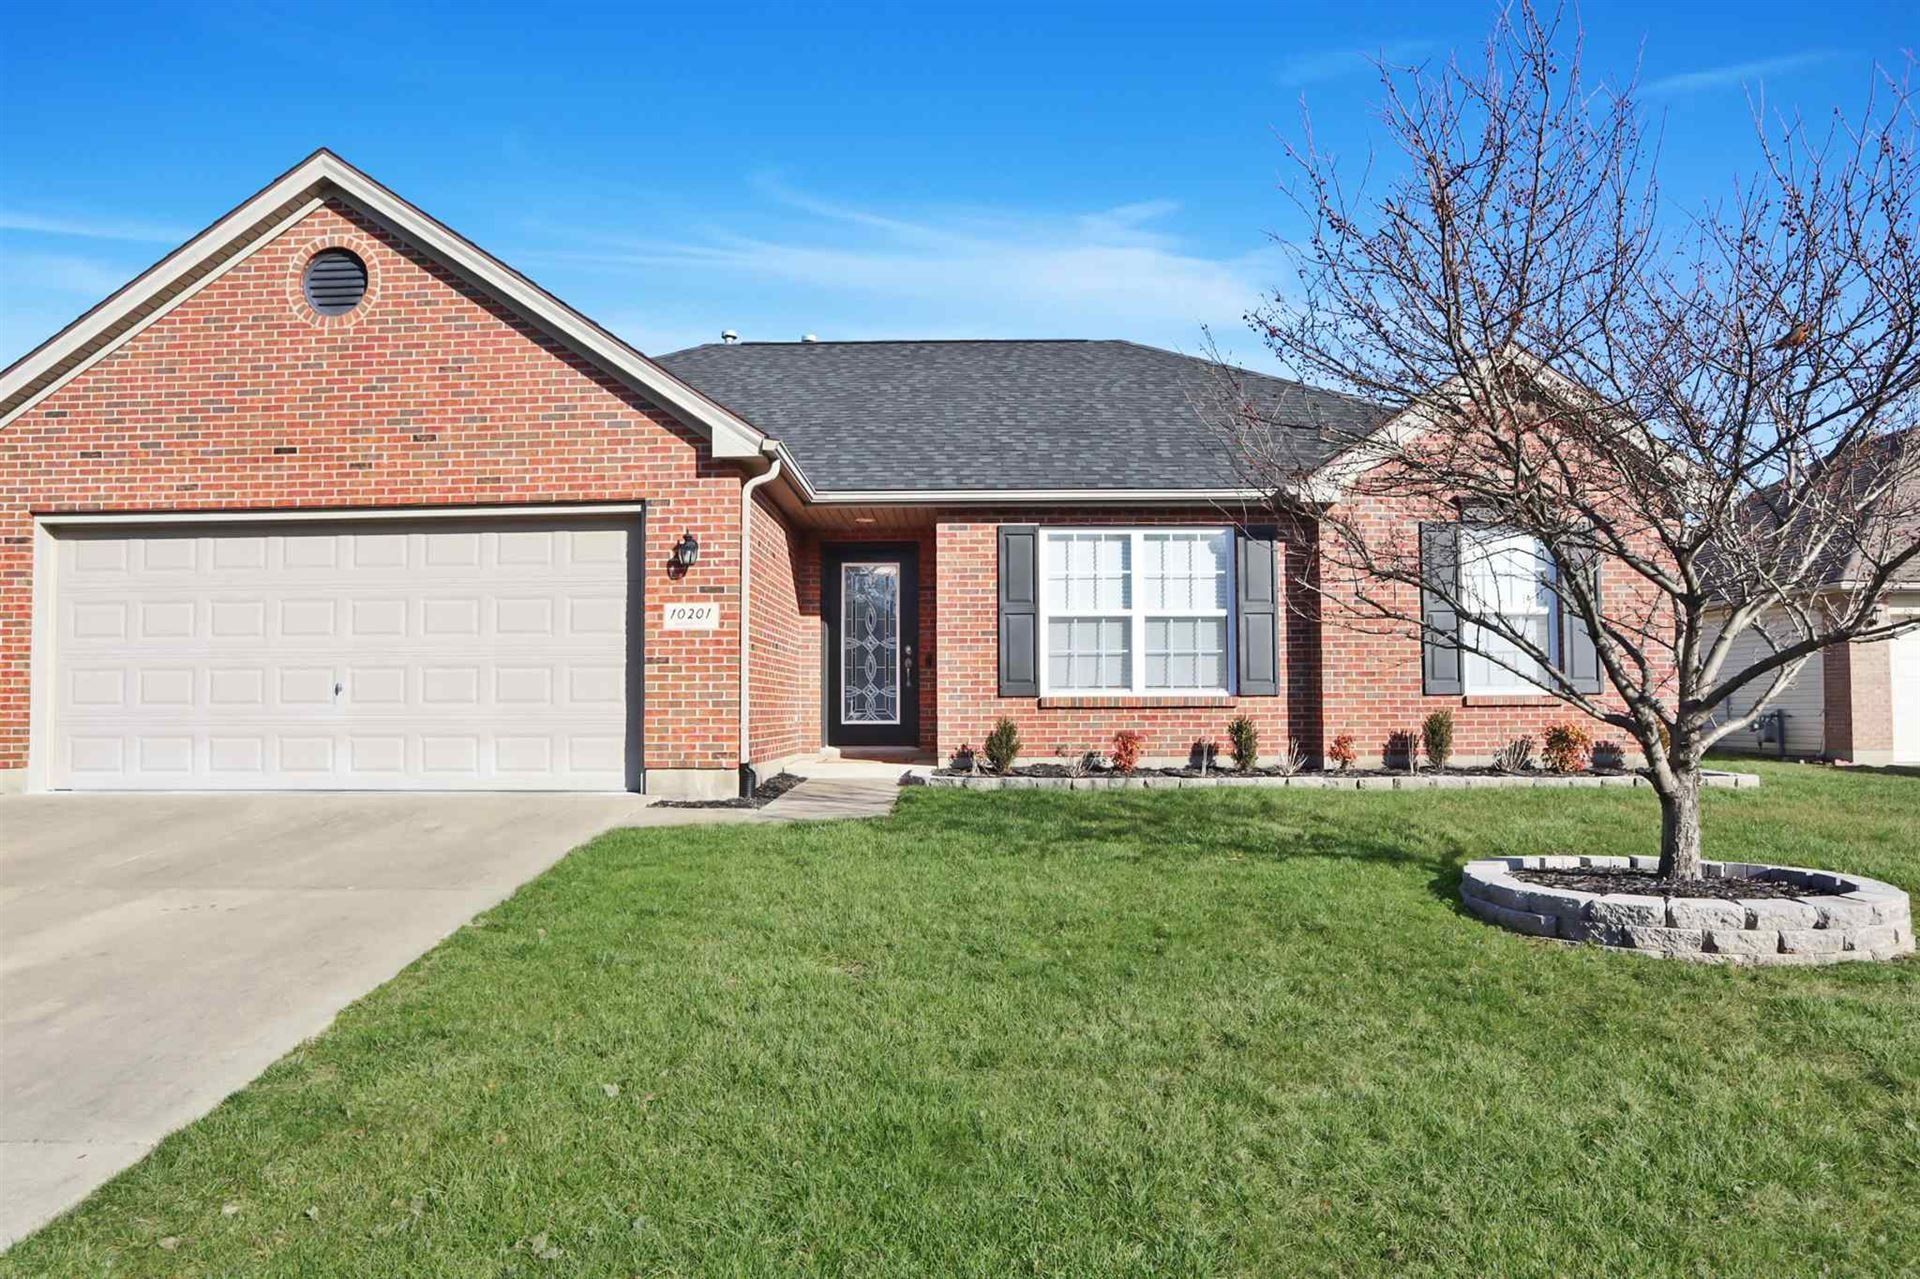 10201 Anchor Way, Evansville, IN 47725 - #: 202006715